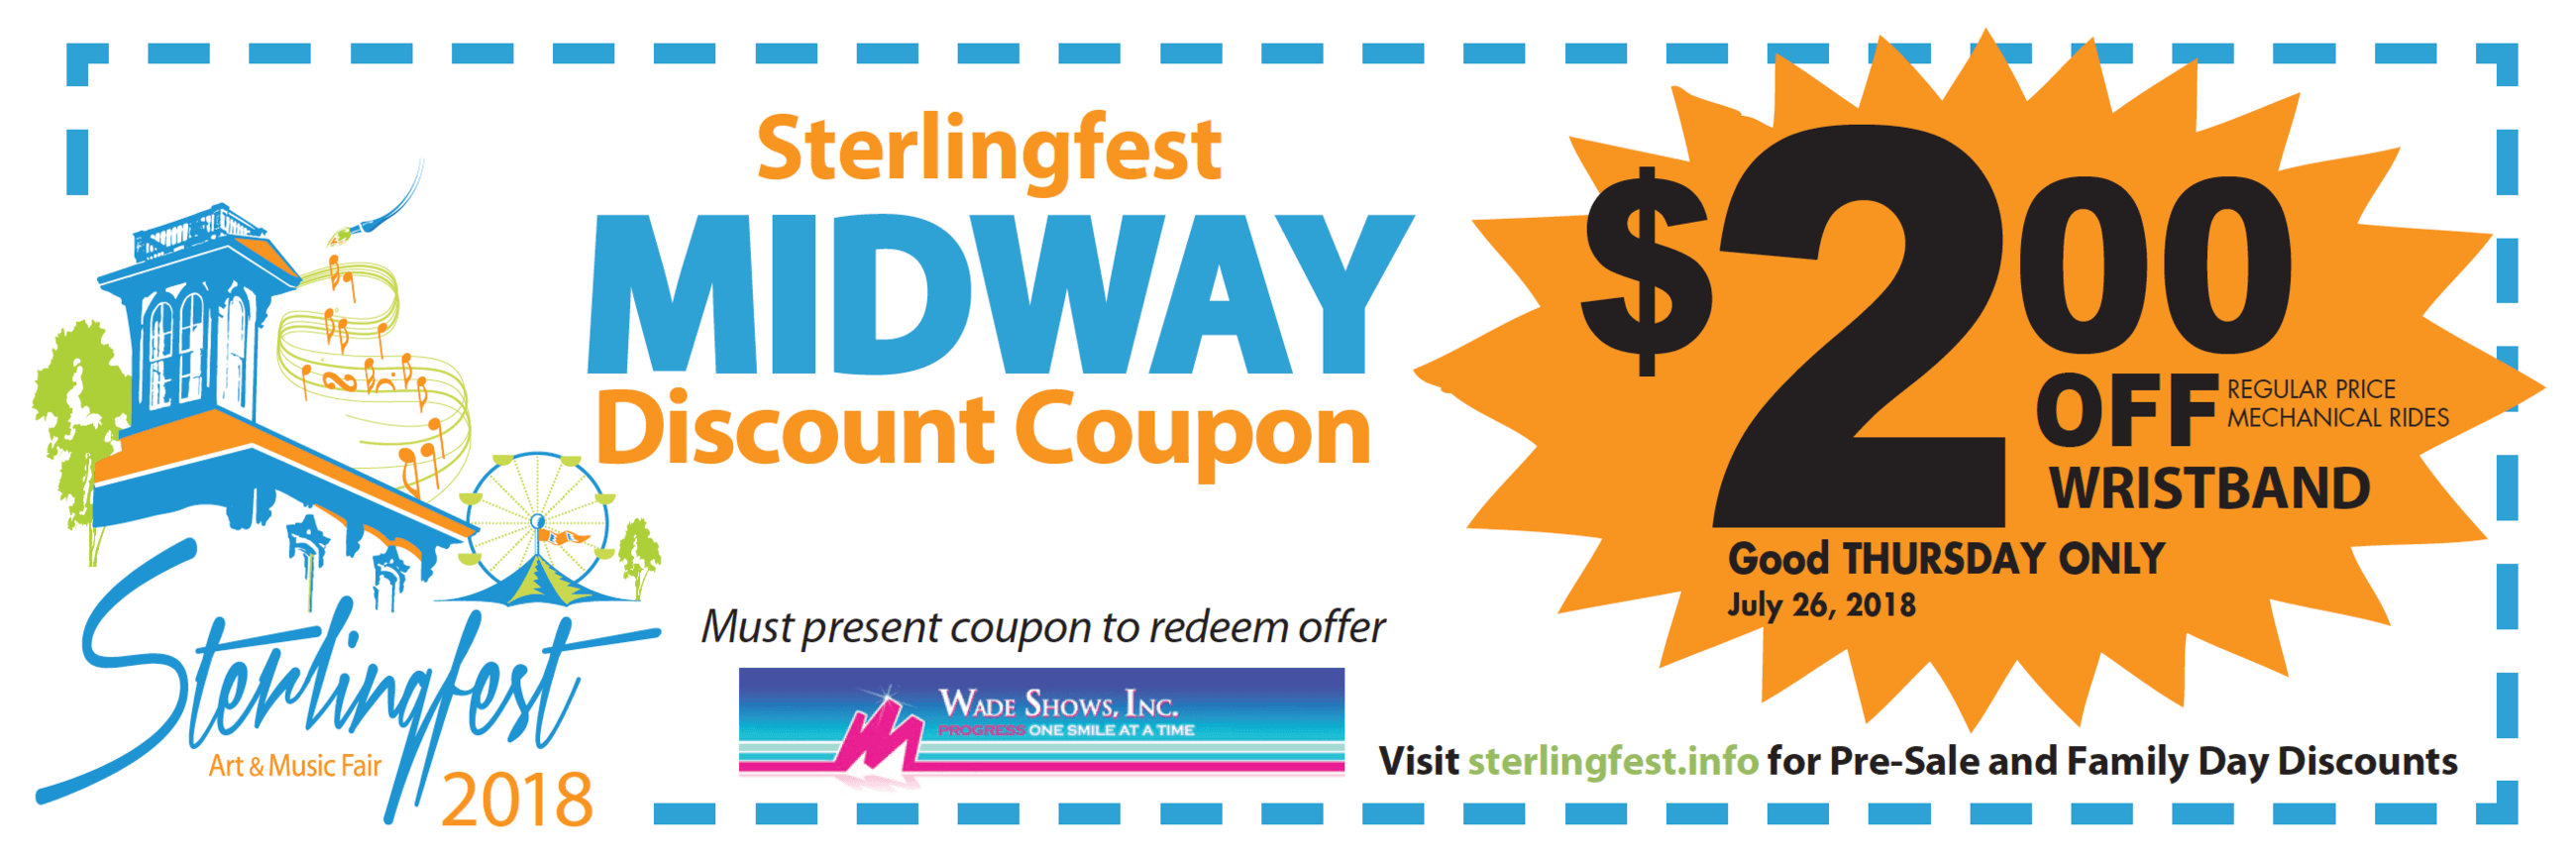 Sterlingfest Midway Coupon 2018